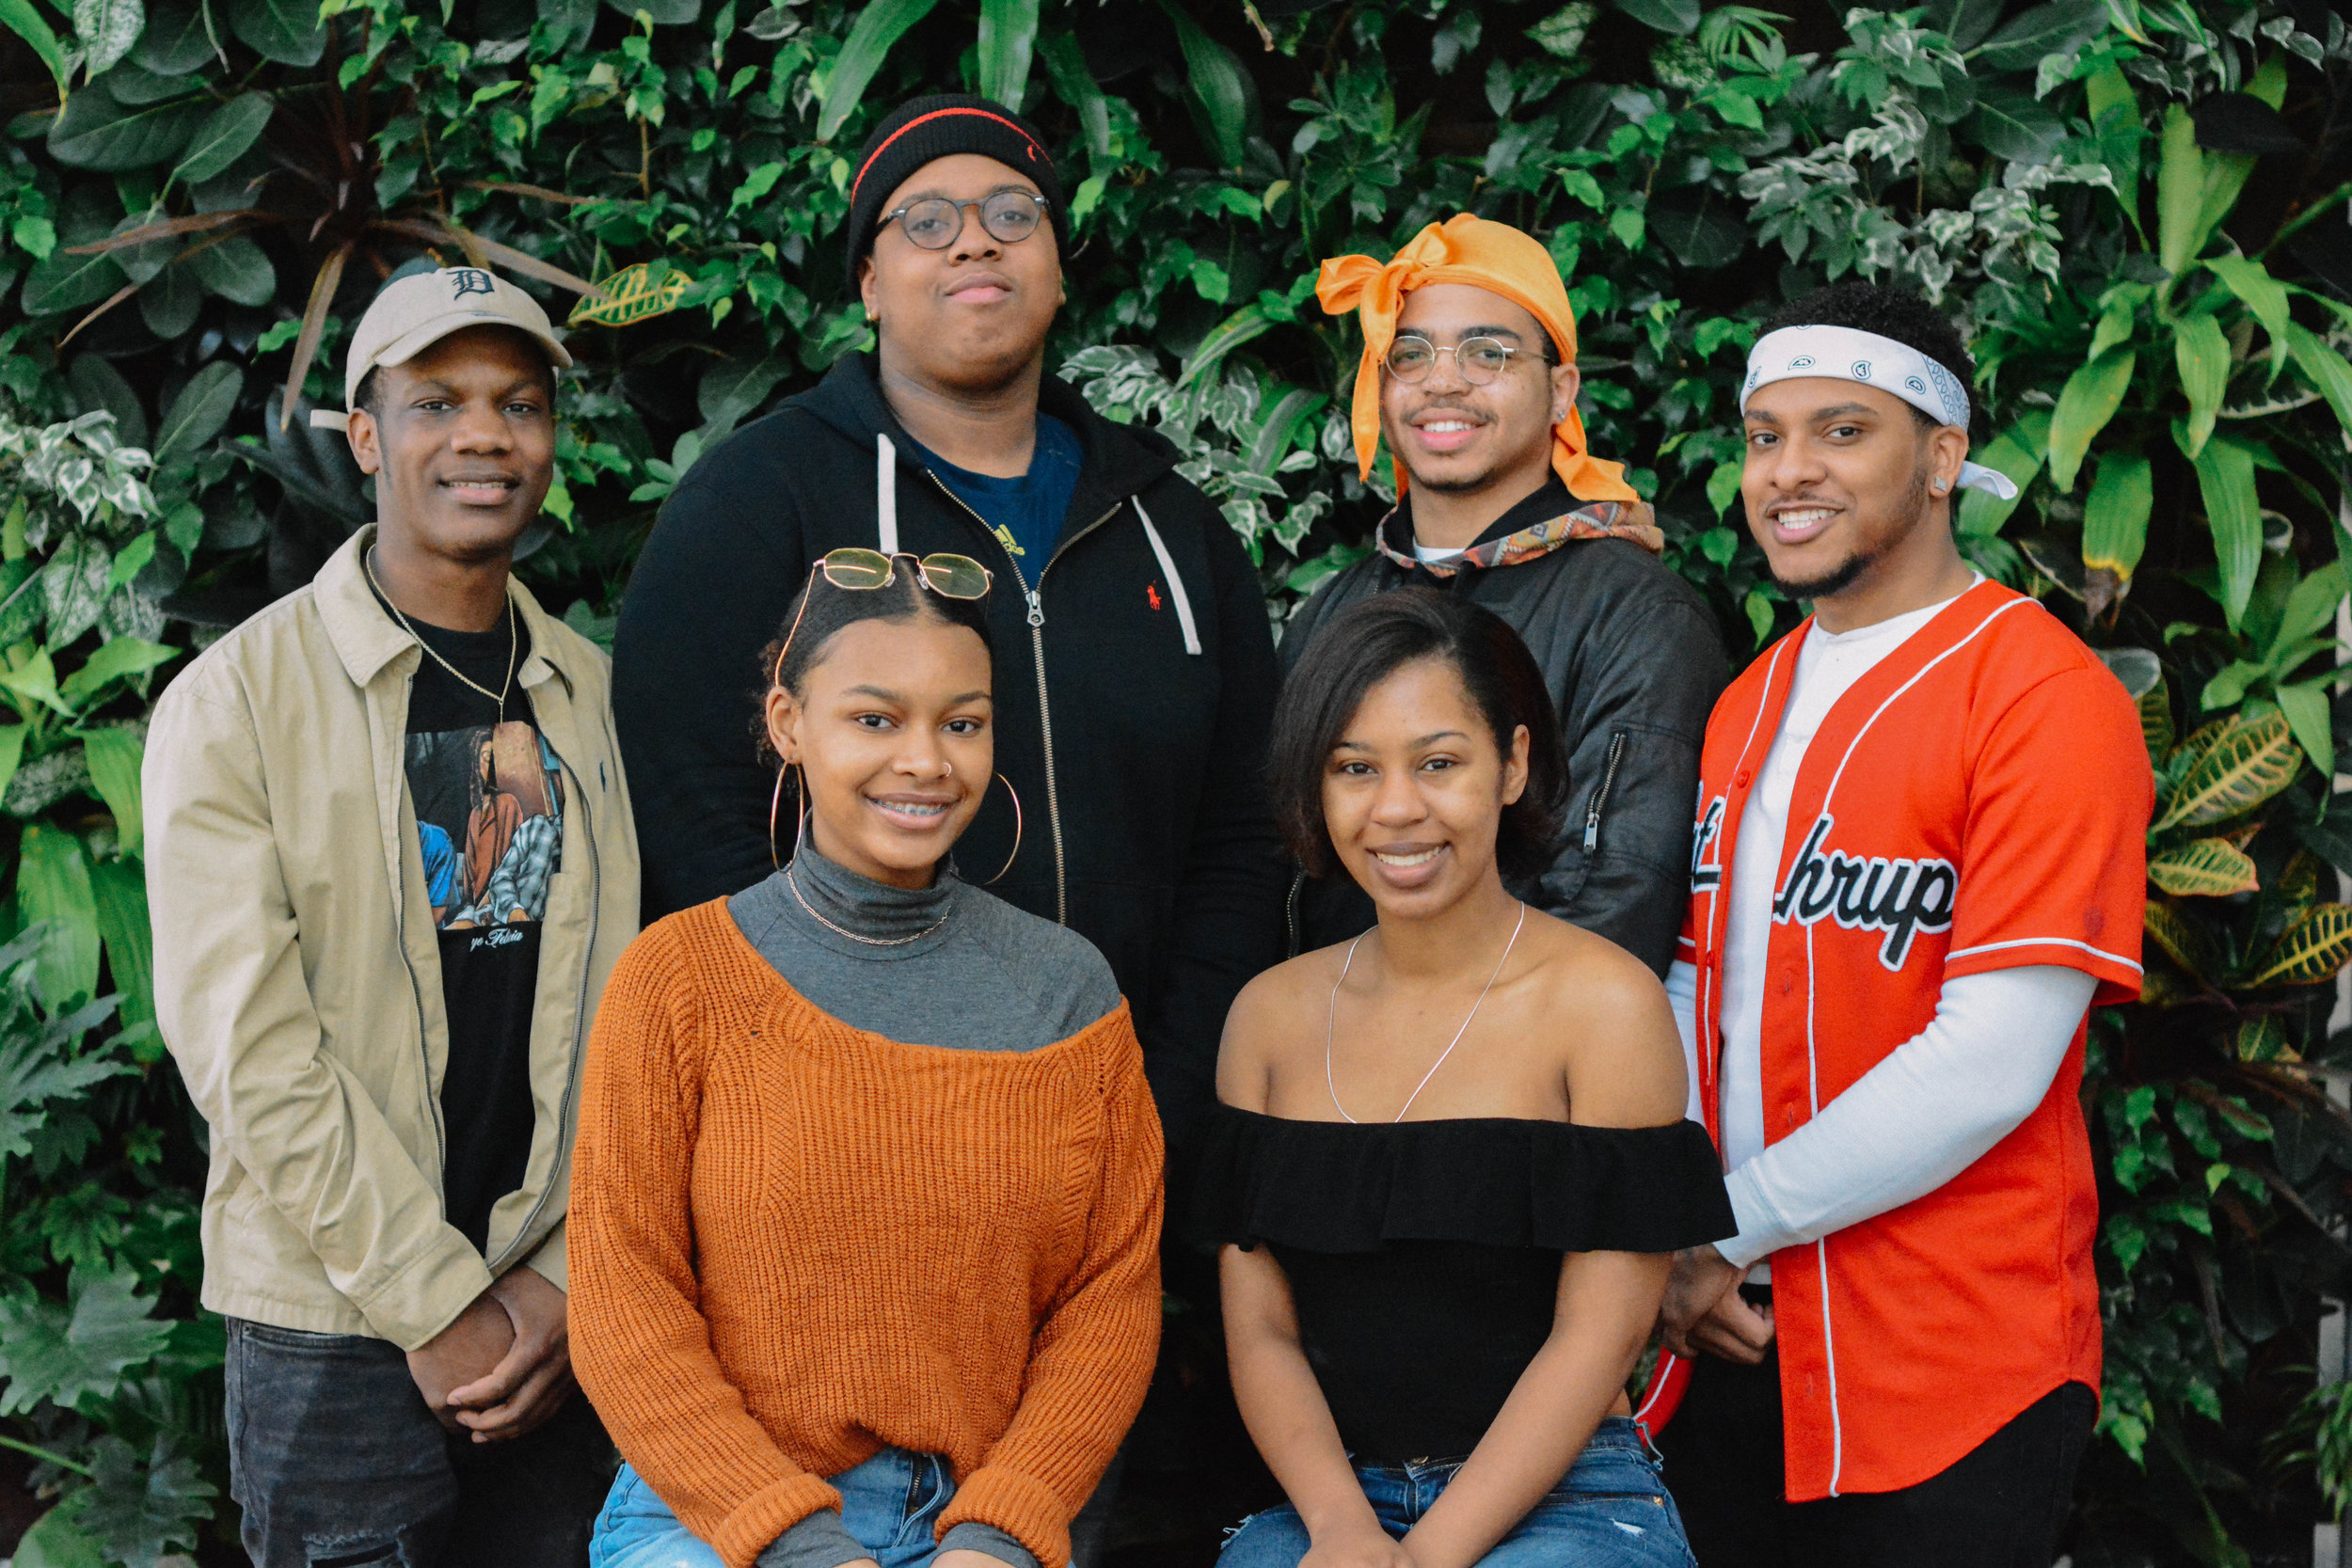 Creatives of Color - A platform to connect minority artists, allowing them to collaborate and showcase their work.CLARENCE WOMACK, JHAWAN DAVIS, TYRONE EDWARDS, DREW METCALF, ASIA GREEN, KENEDI MCCORMICK